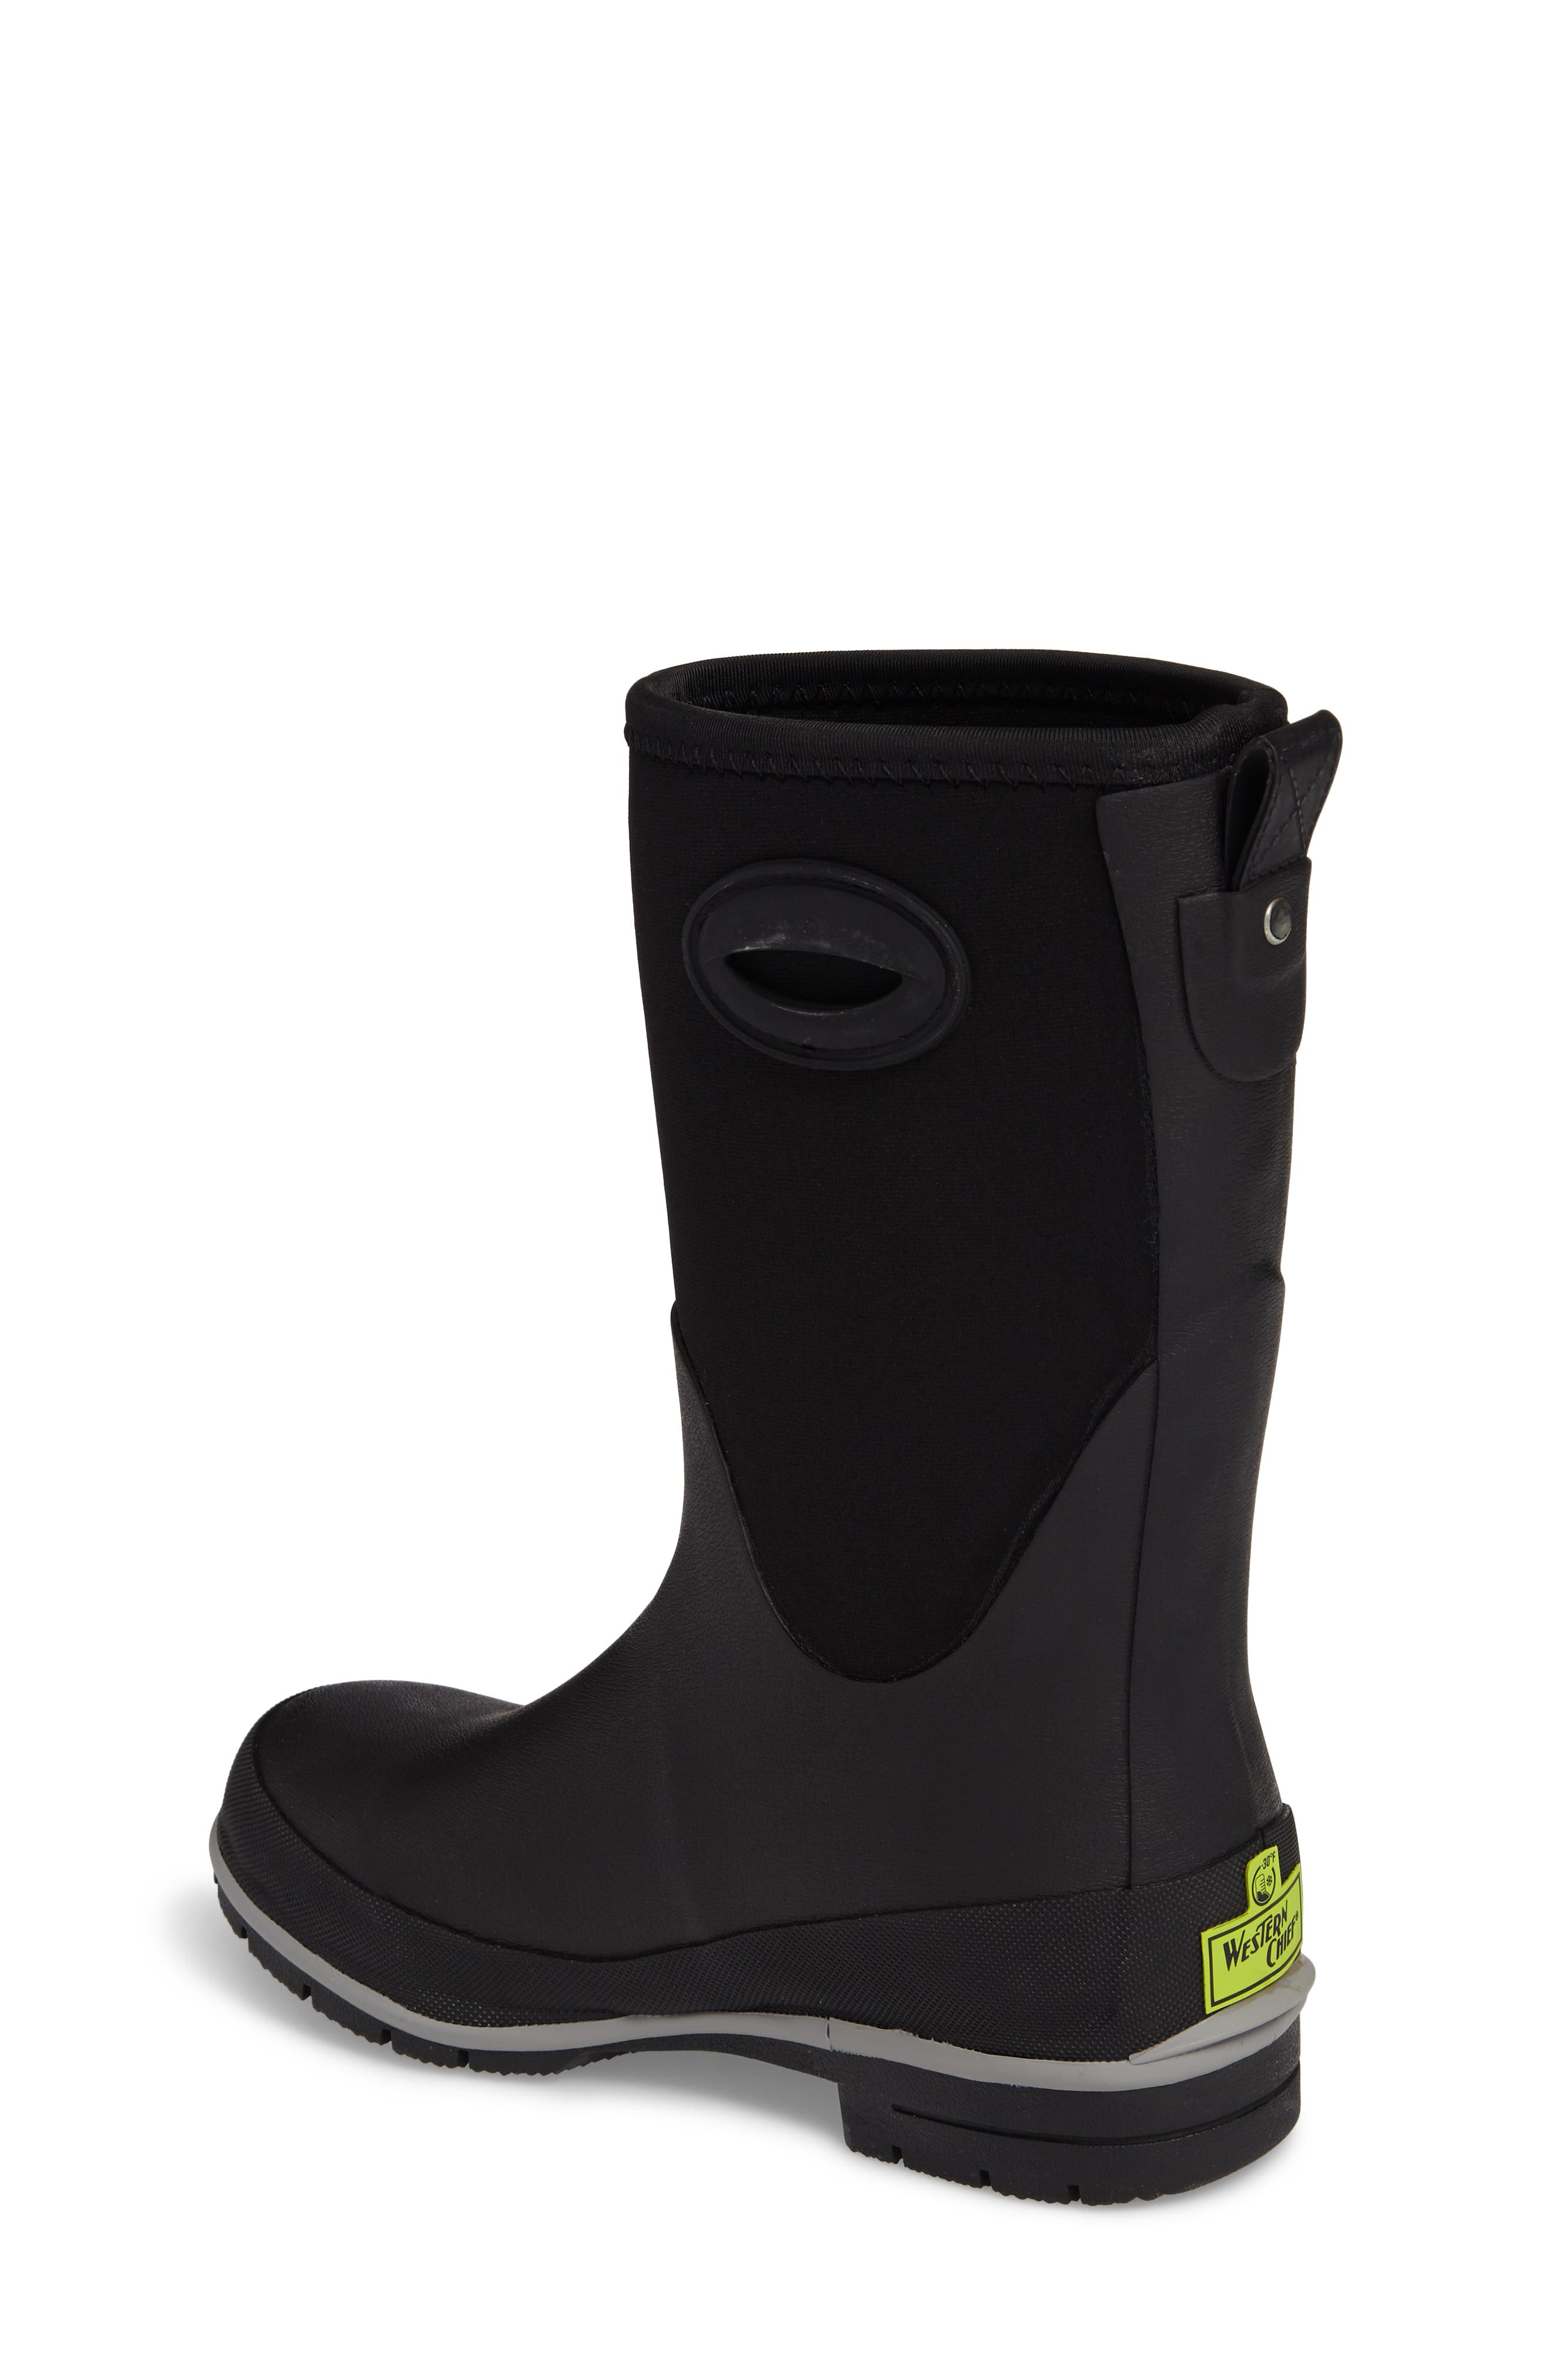 Neoprene Insulated Boot,                             Alternate thumbnail 2, color,                             001